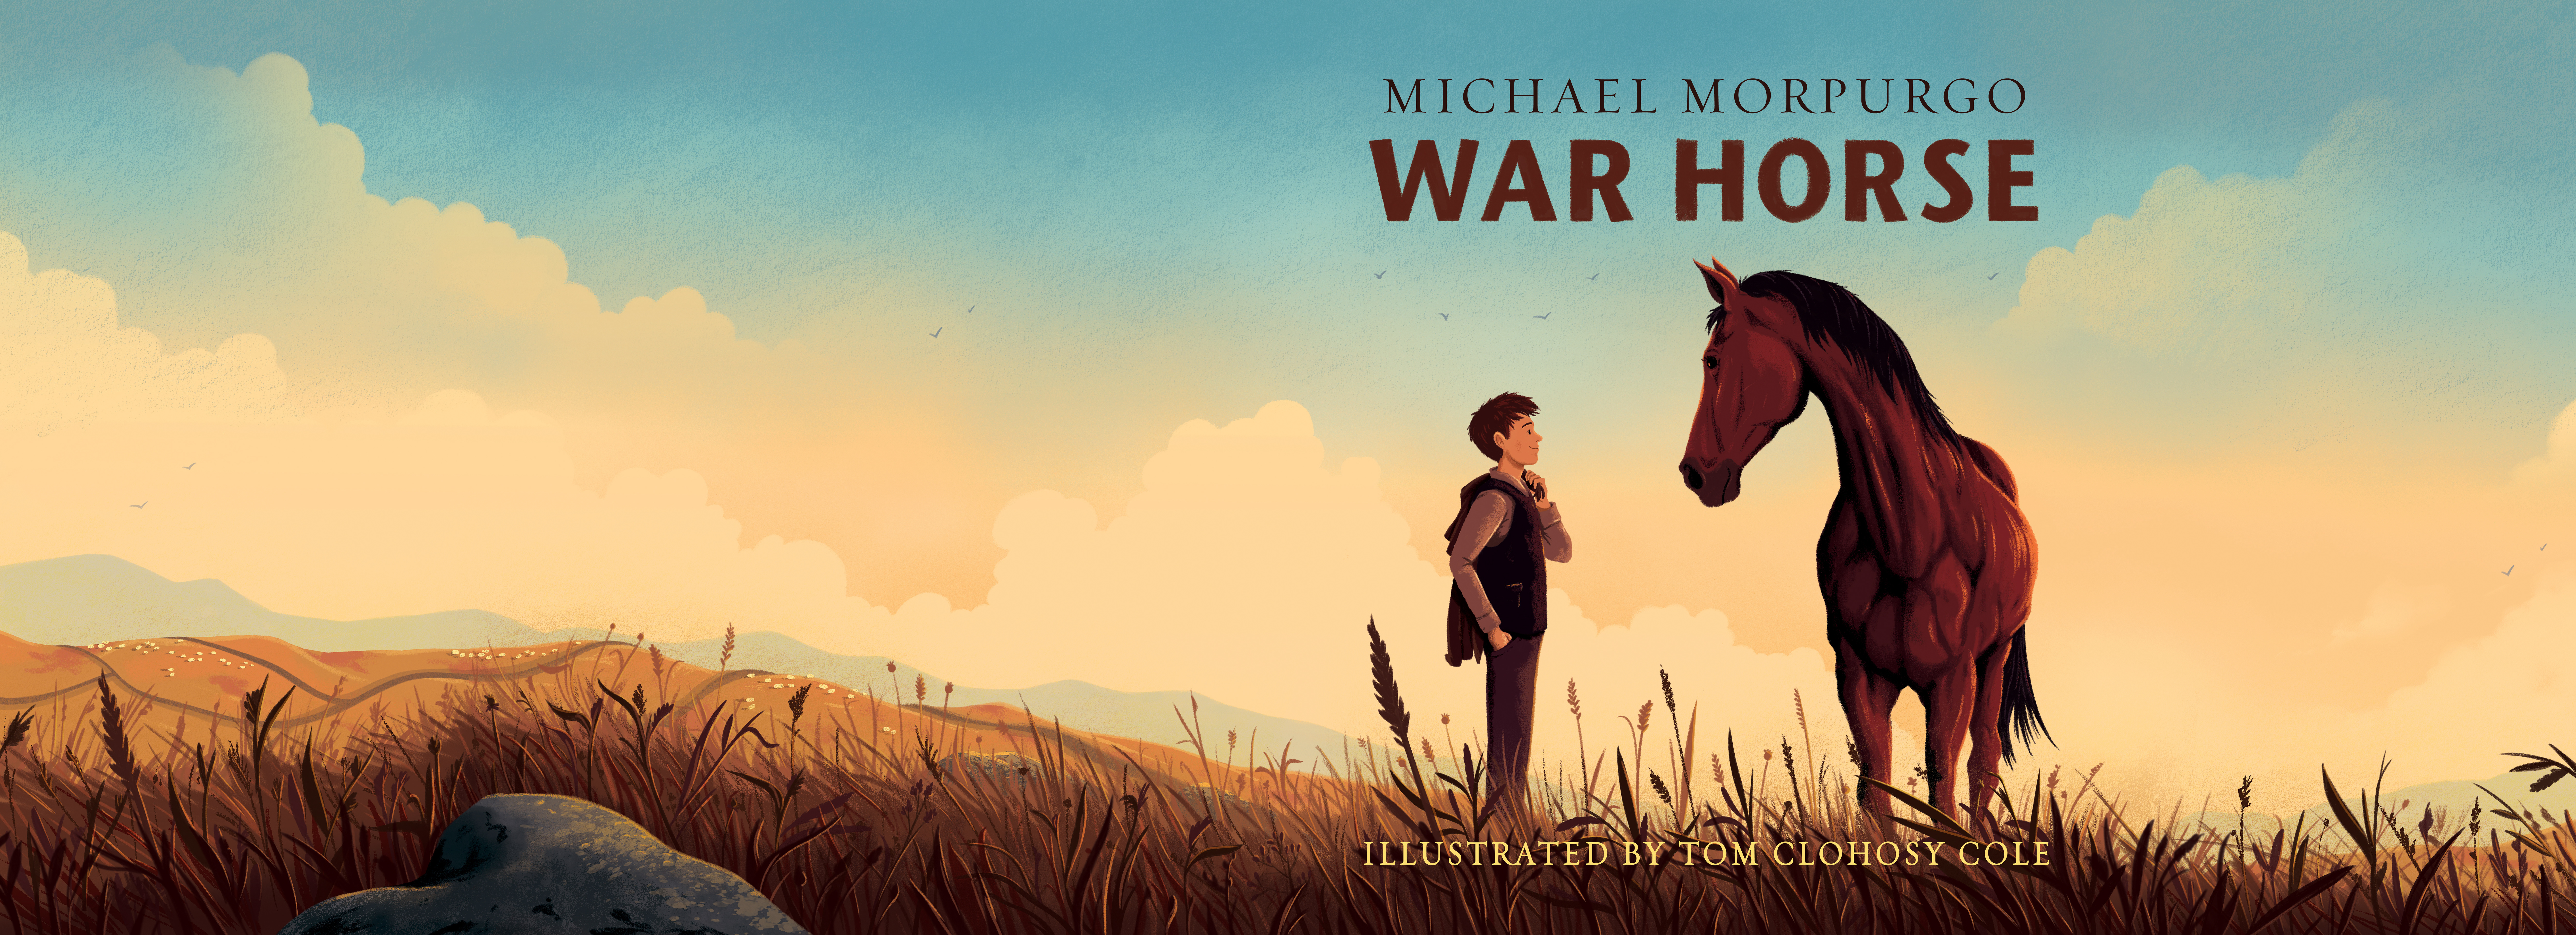 War Horse Book Projects Photos Videos Logos Illustrations And Branding On Behance